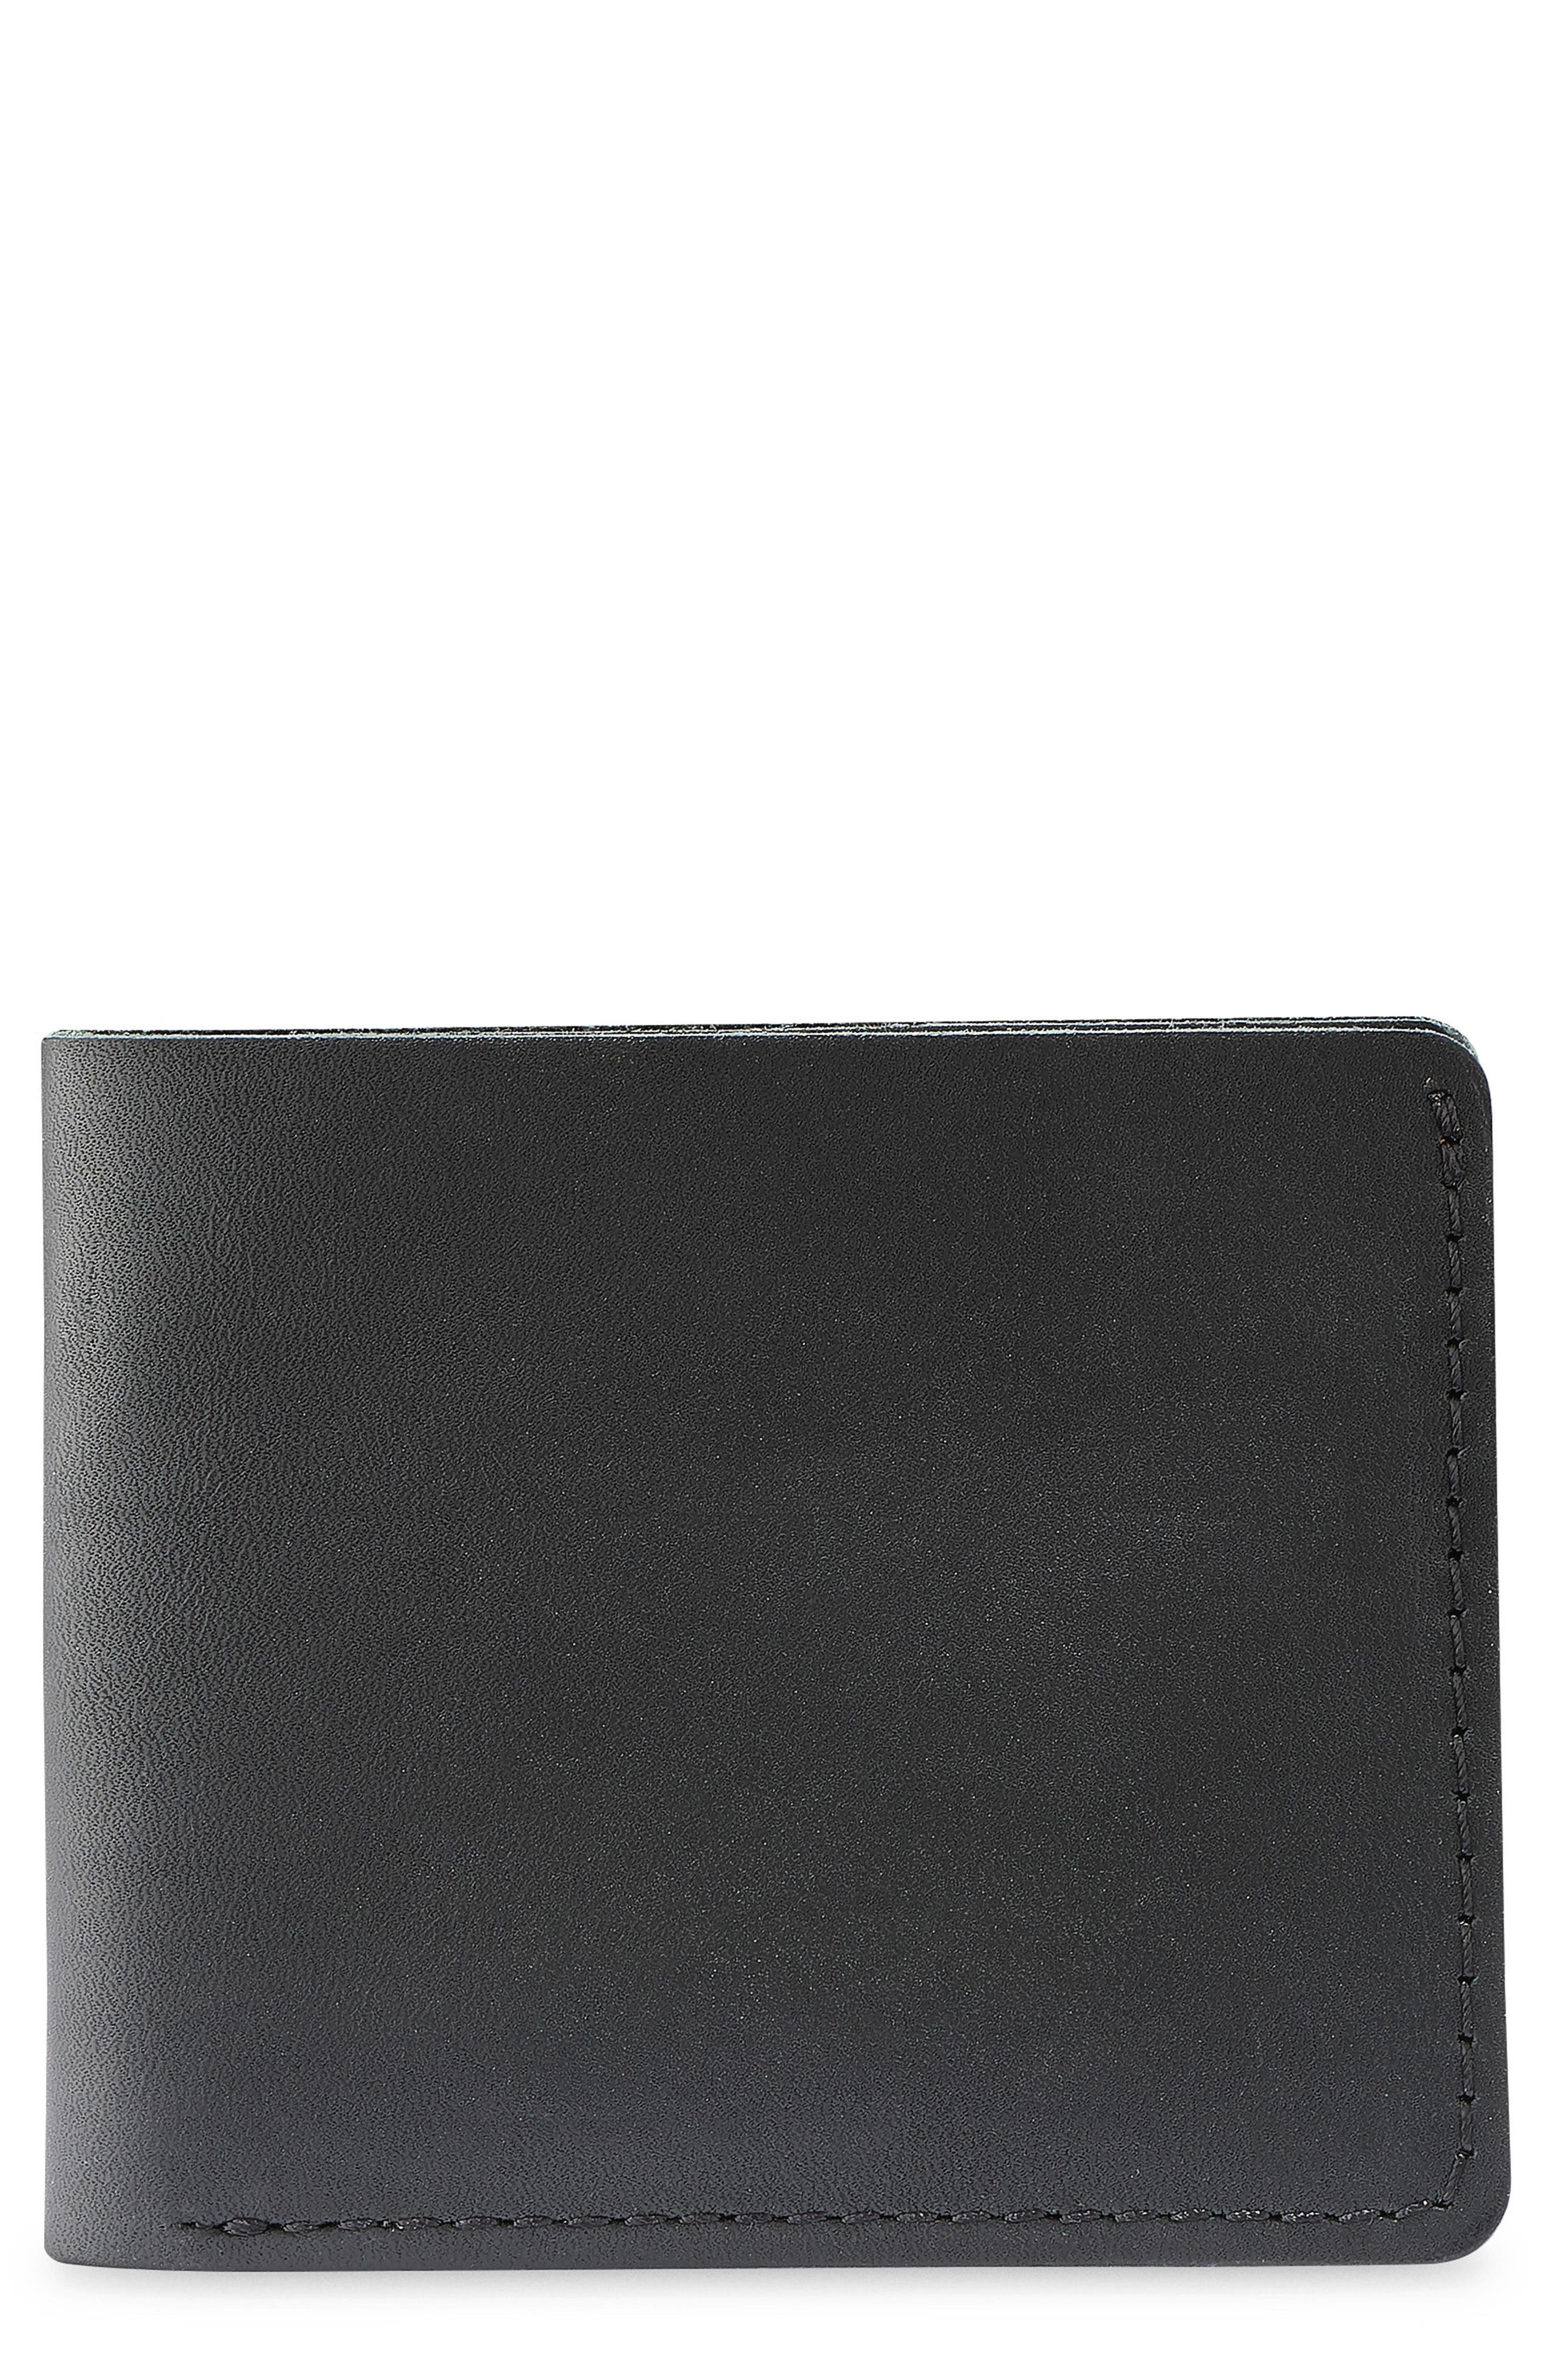 RED WING Classic Bifold Leather Wallet, Main, color, BLACK